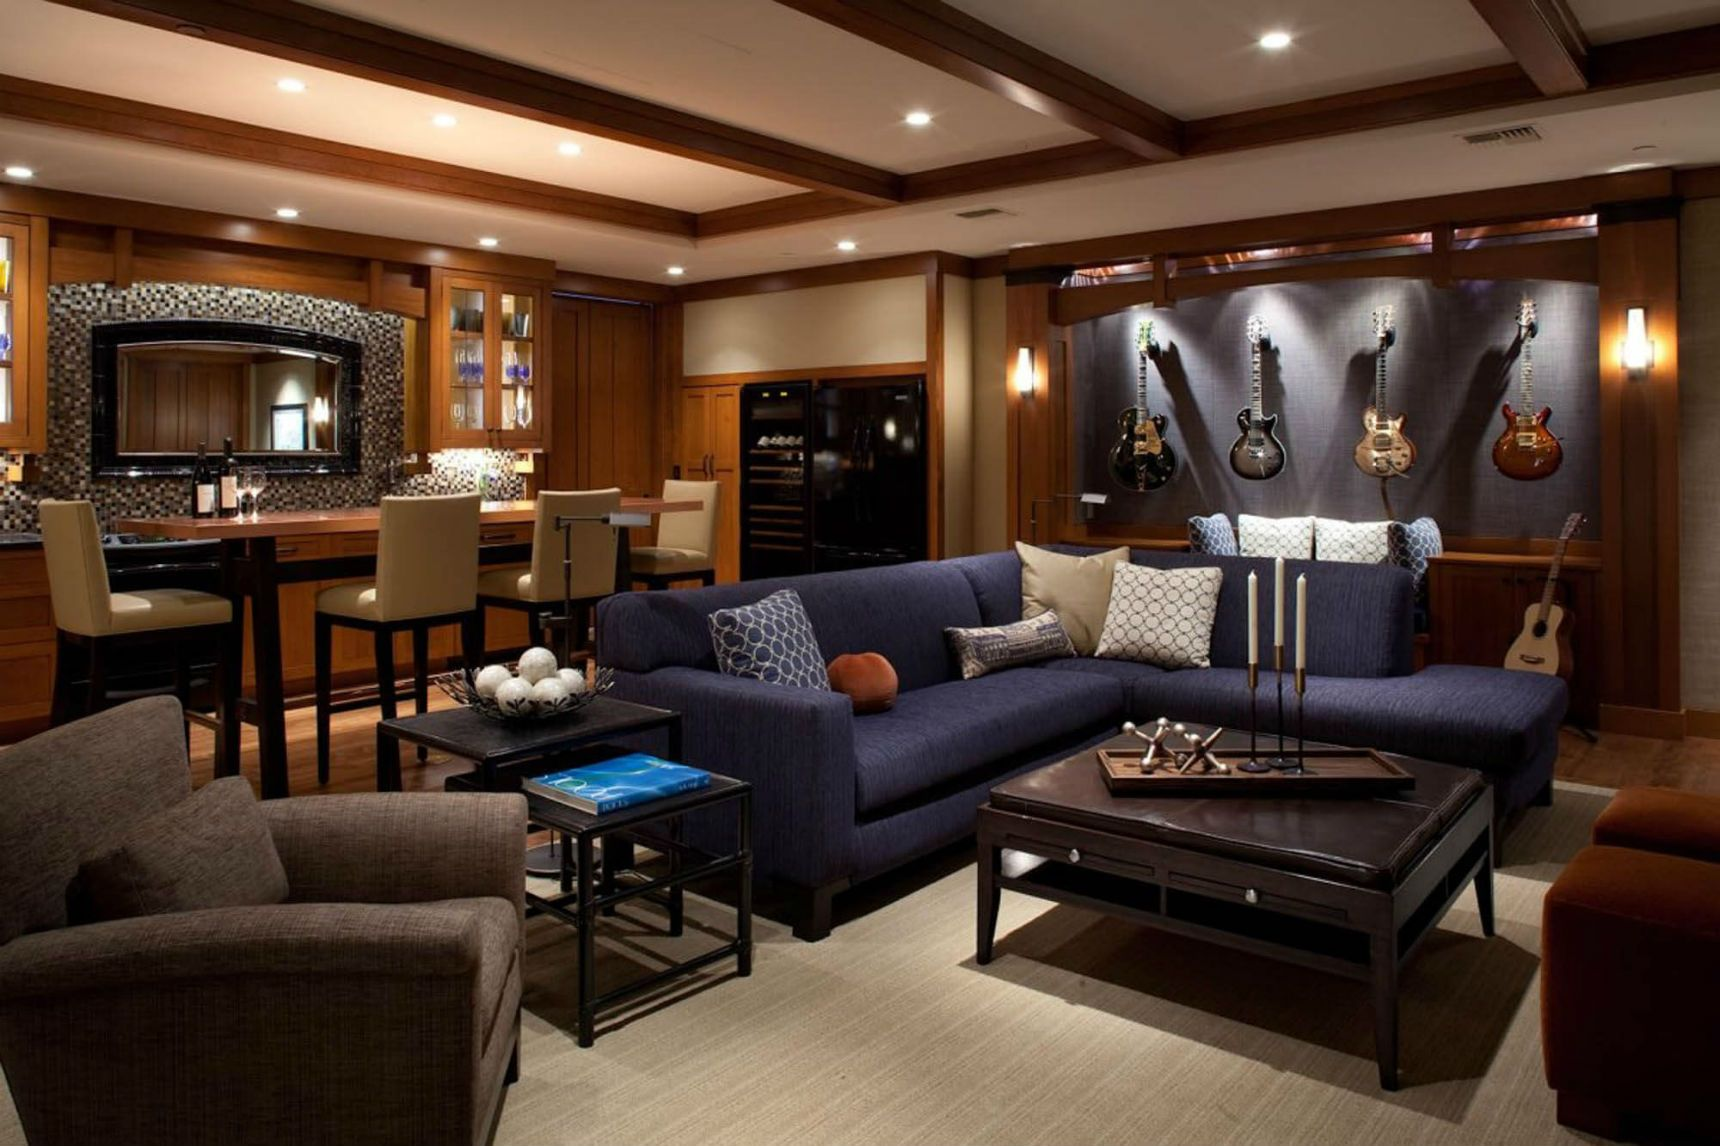 12 Necessary Items For The Perfect Man Cave